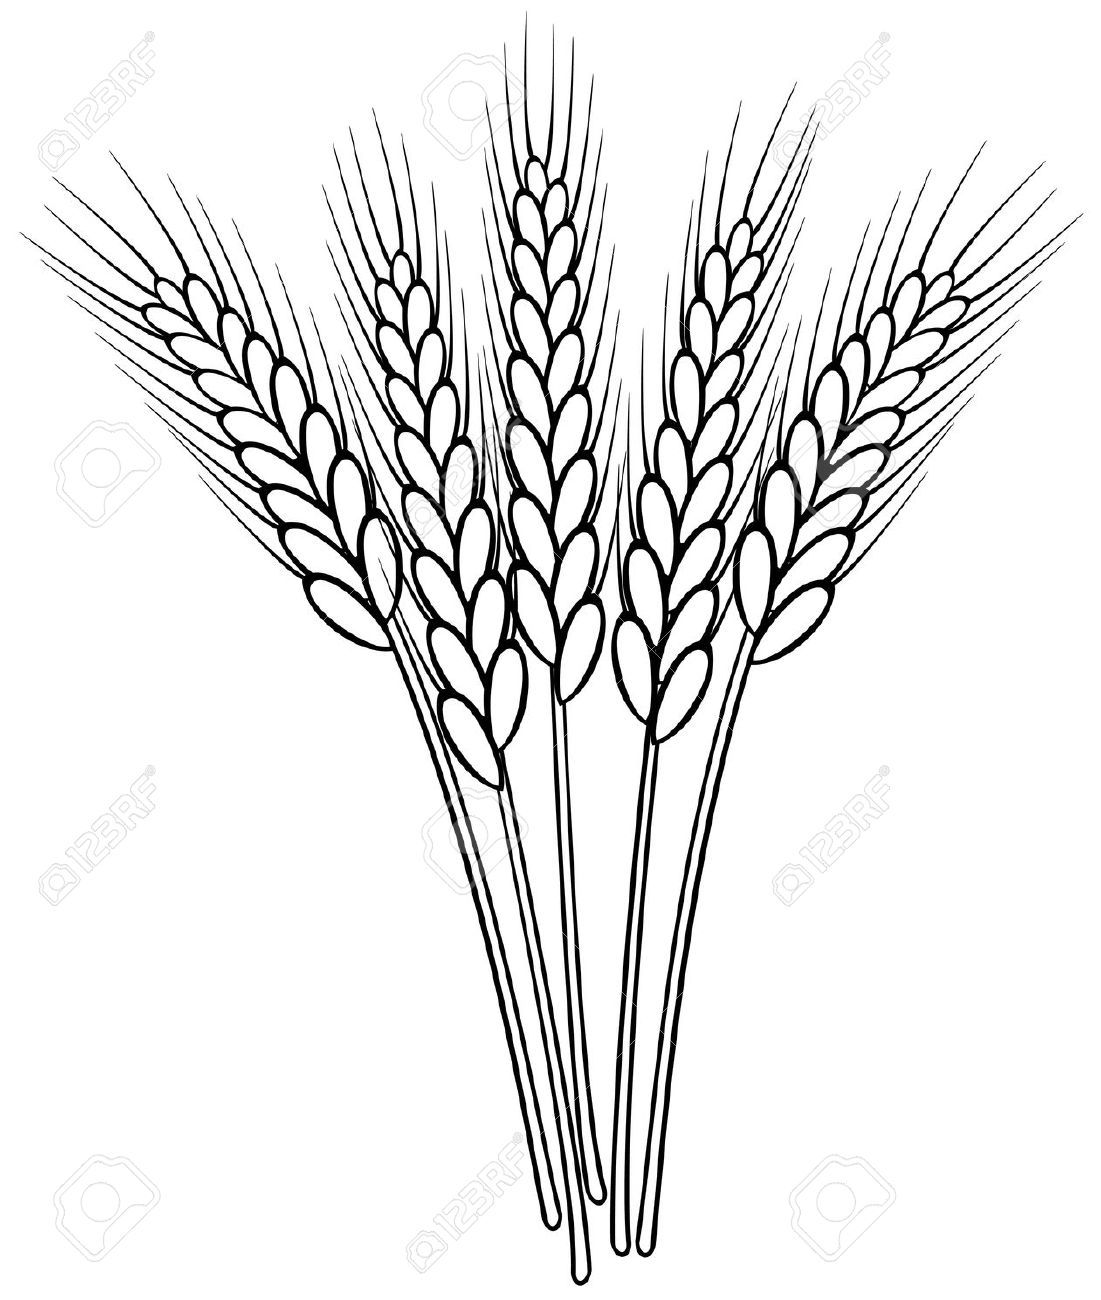 Wheat outline clipart jpg free stock small wheat sheaf vector - Google Search | Ink | Wheat ... jpg free stock